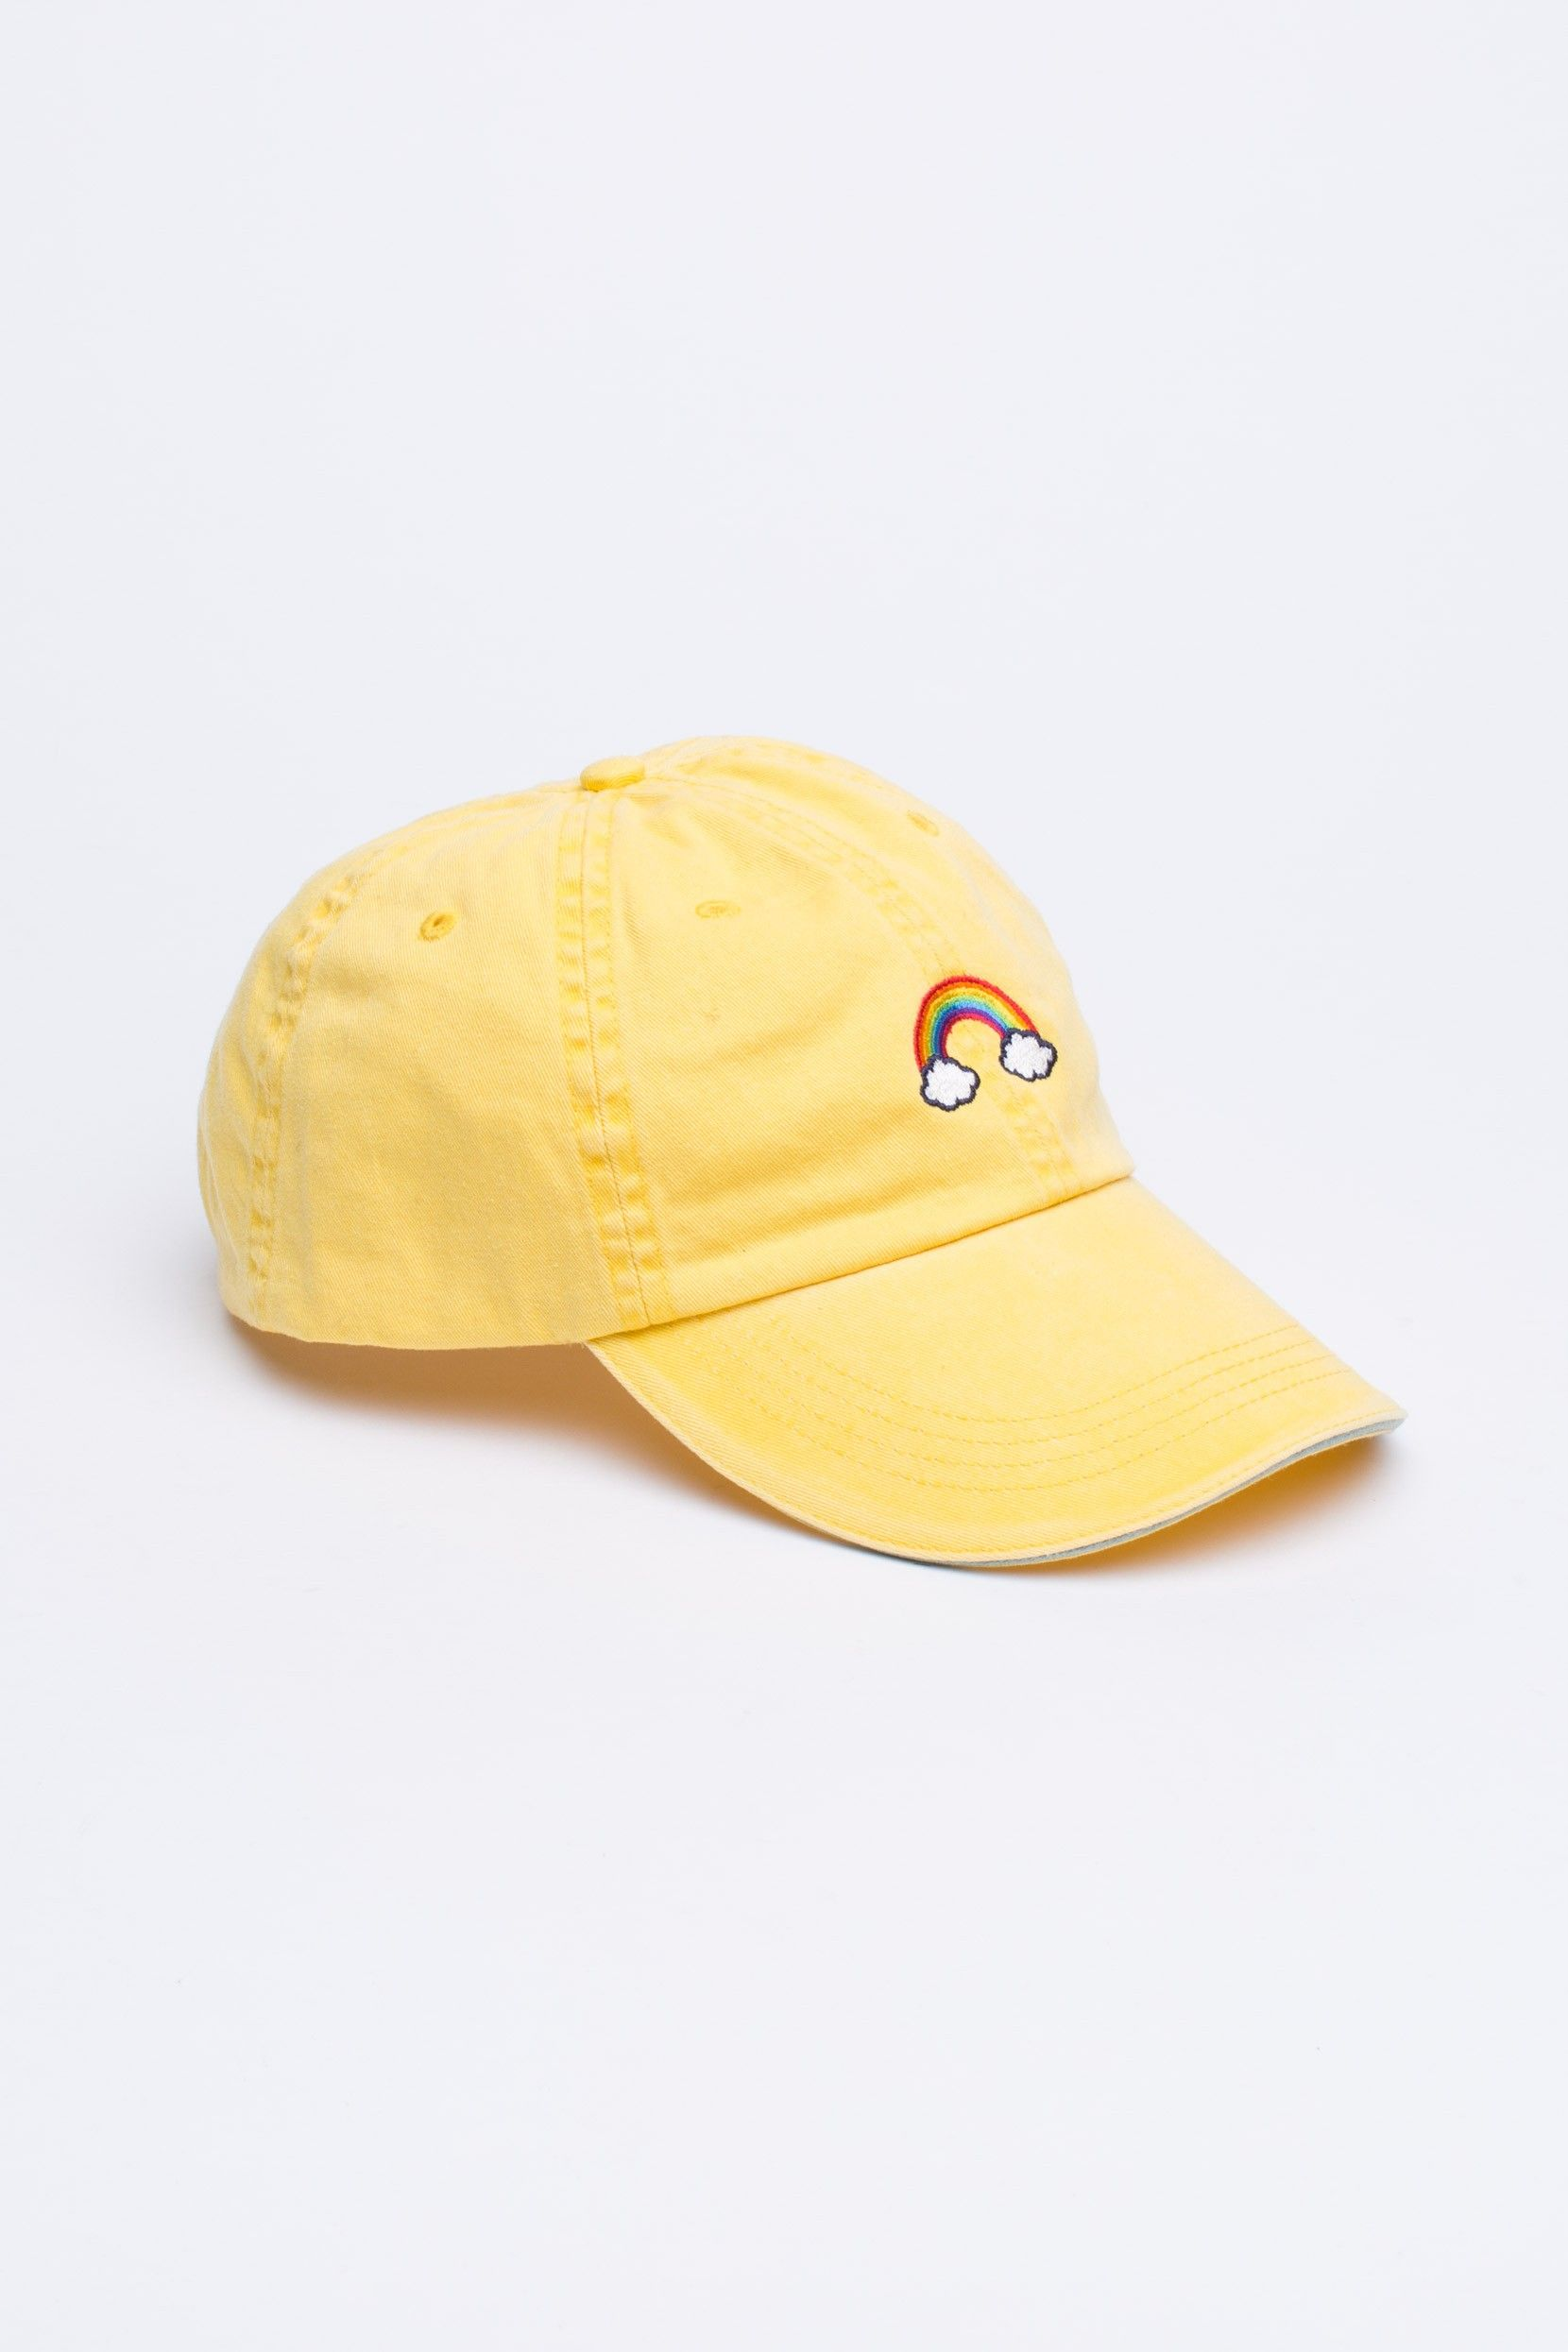 HYPE RAINBOW DAD CAP https   www.justhype.co.uk  ee7566be7a3